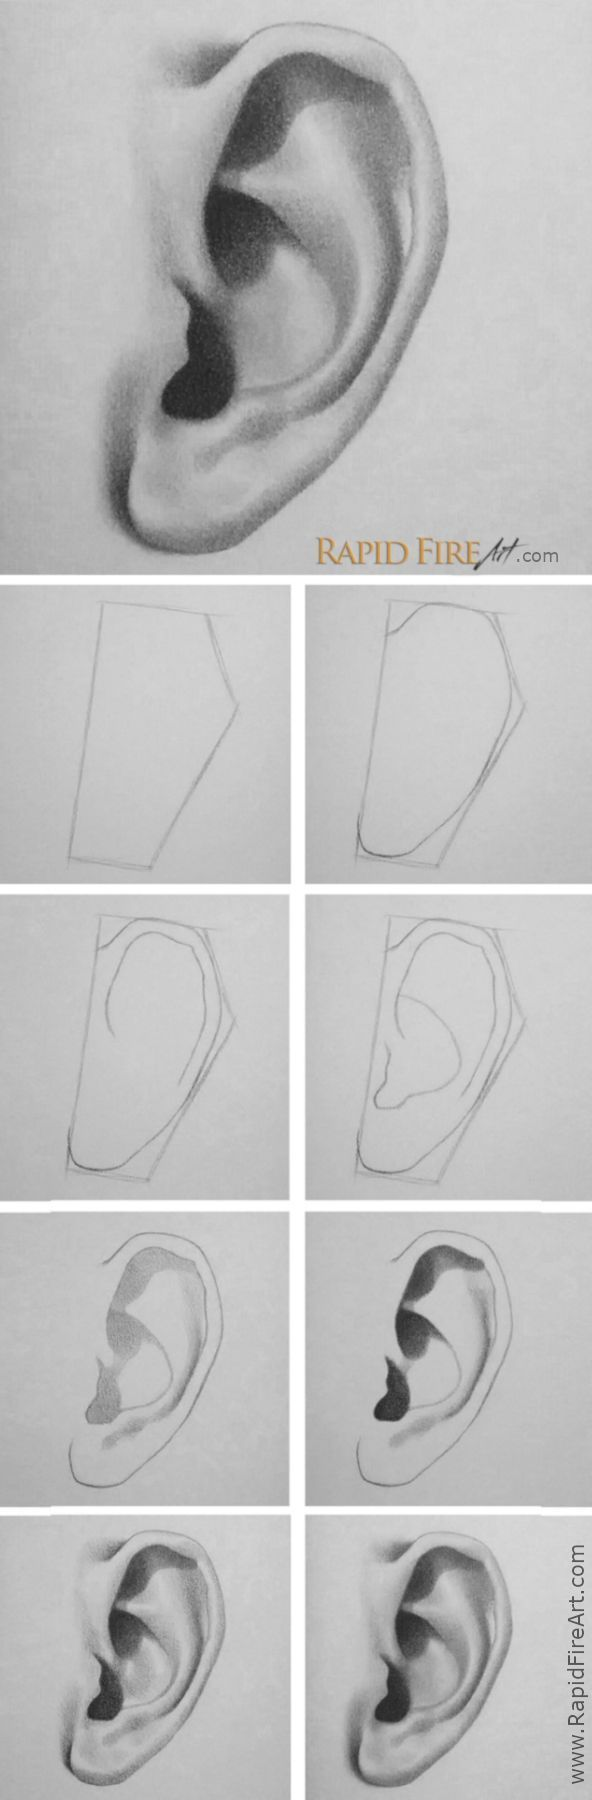 How to Draw Ears | Steps – #dessin #draw #Ears #steps #howtodraw How to Draw Ear…